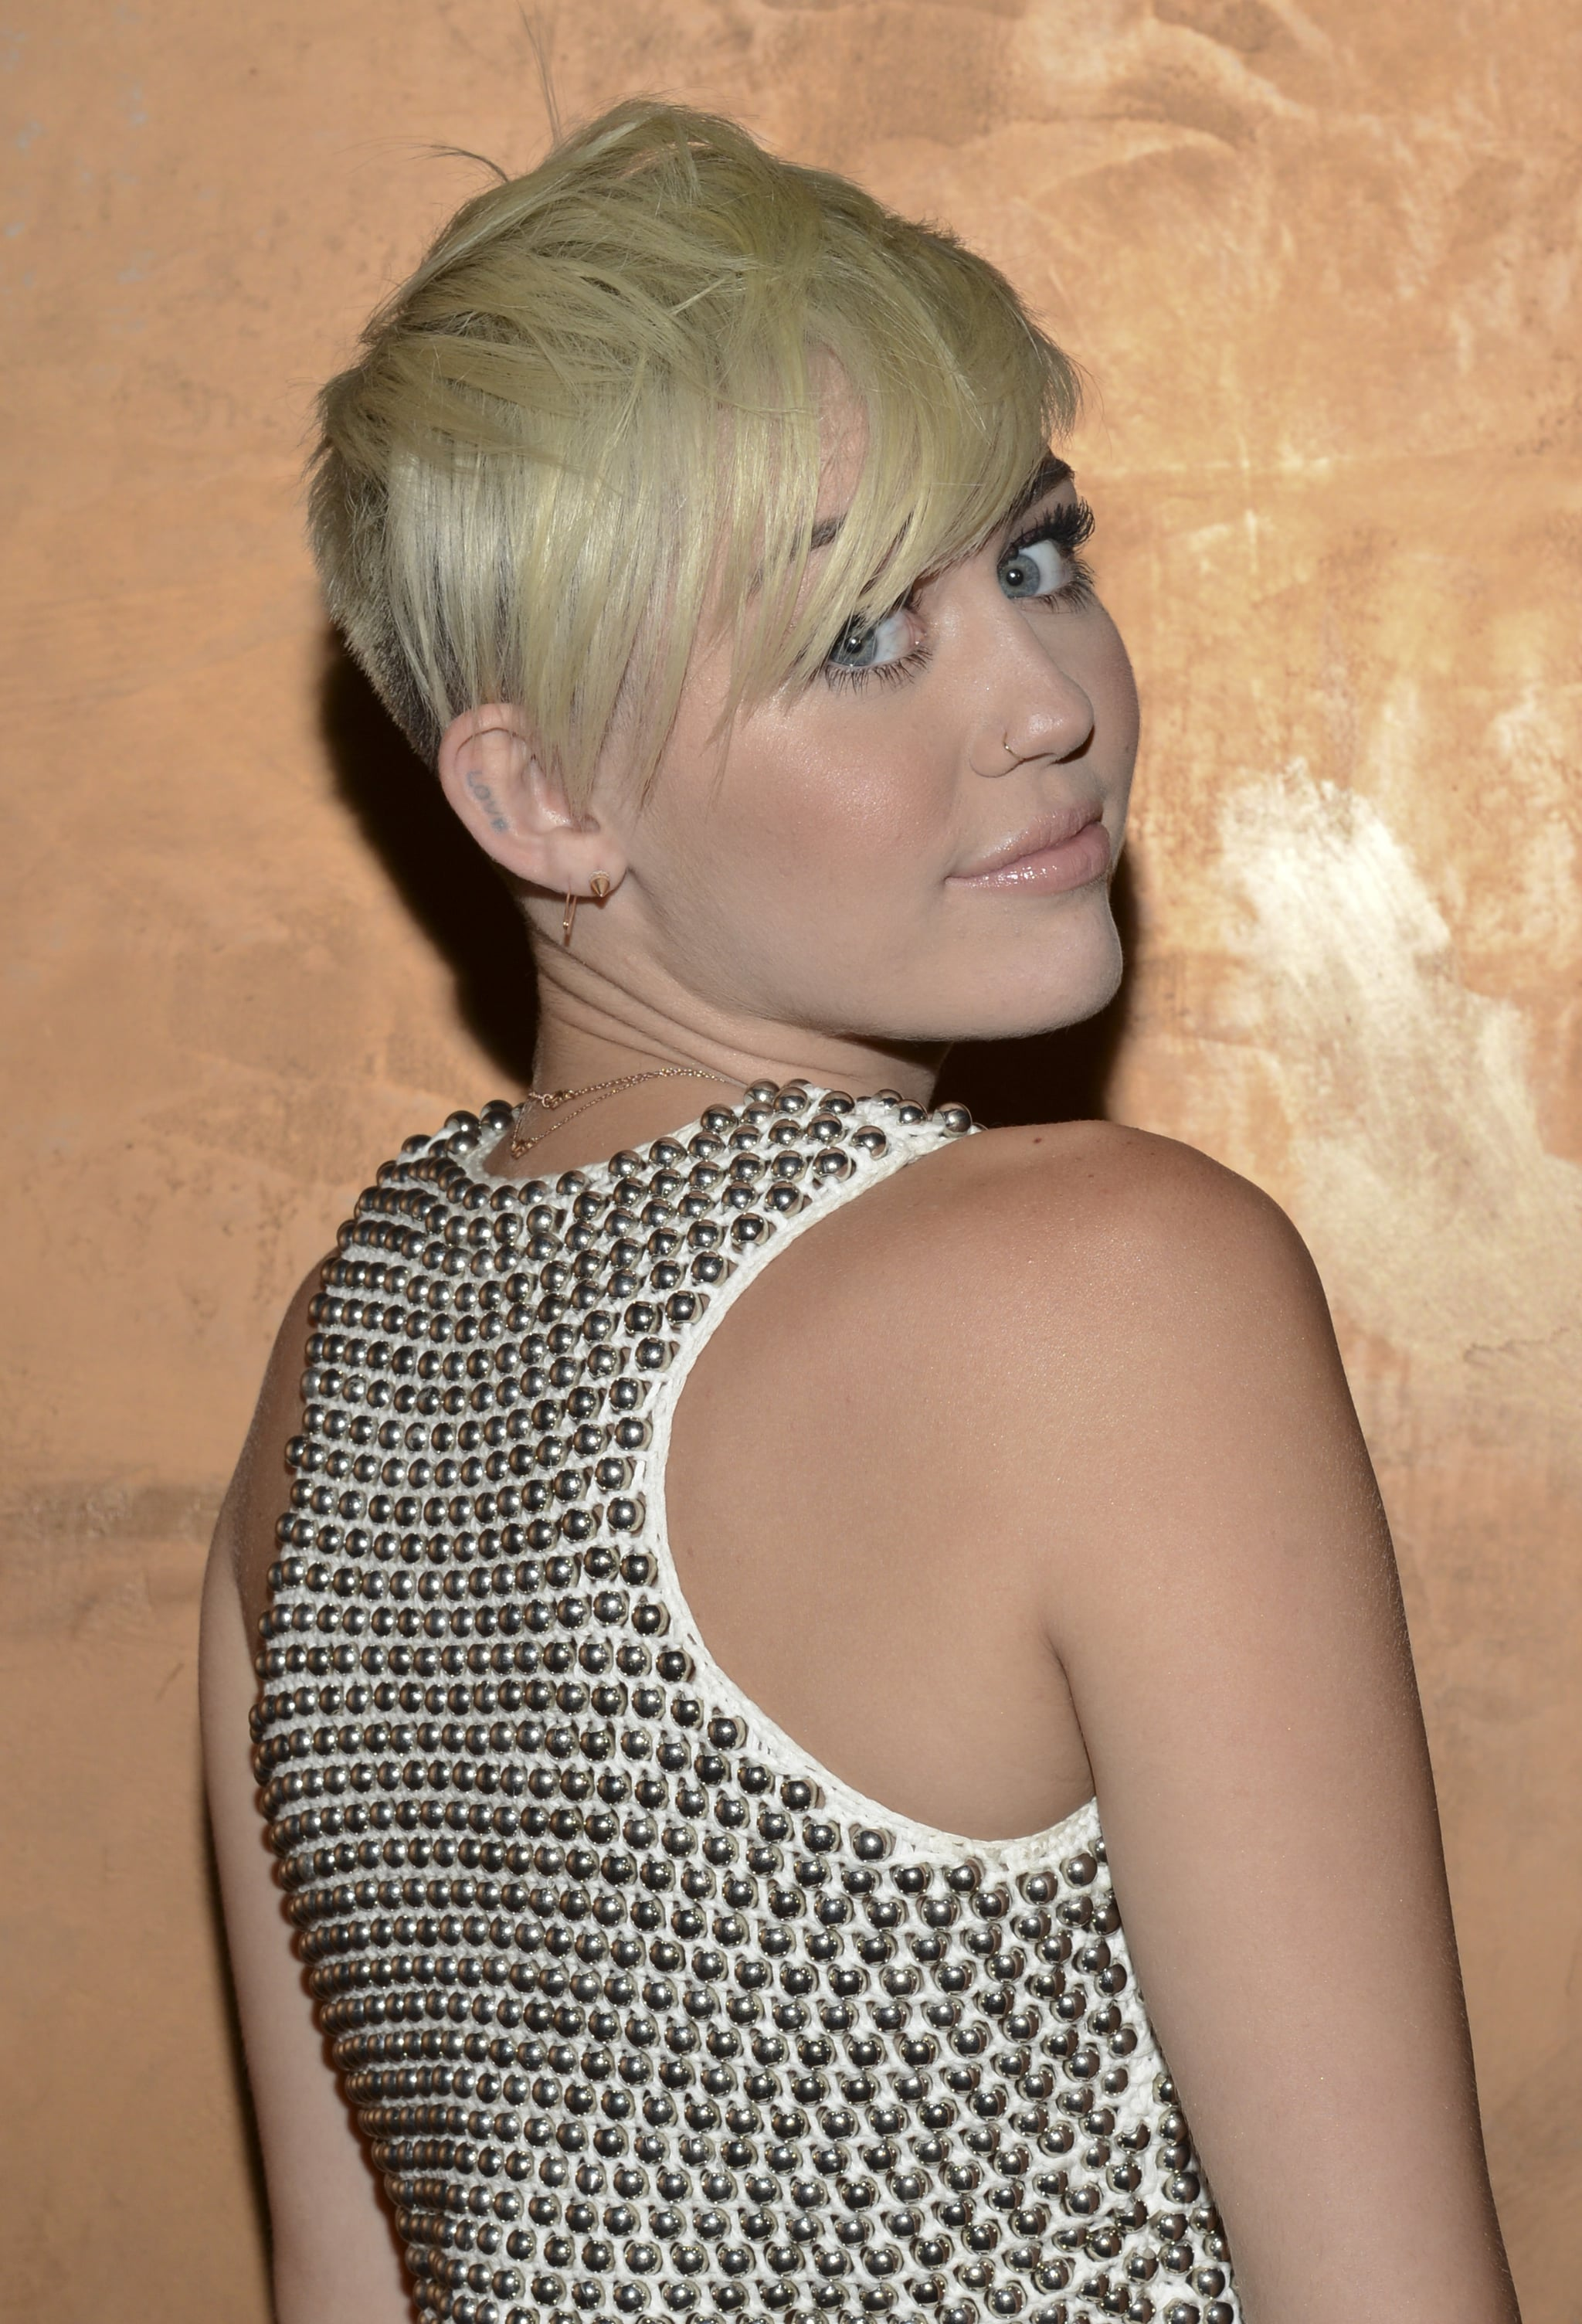 Miley Cyrus attended the City of Hope charity's gala in LA.